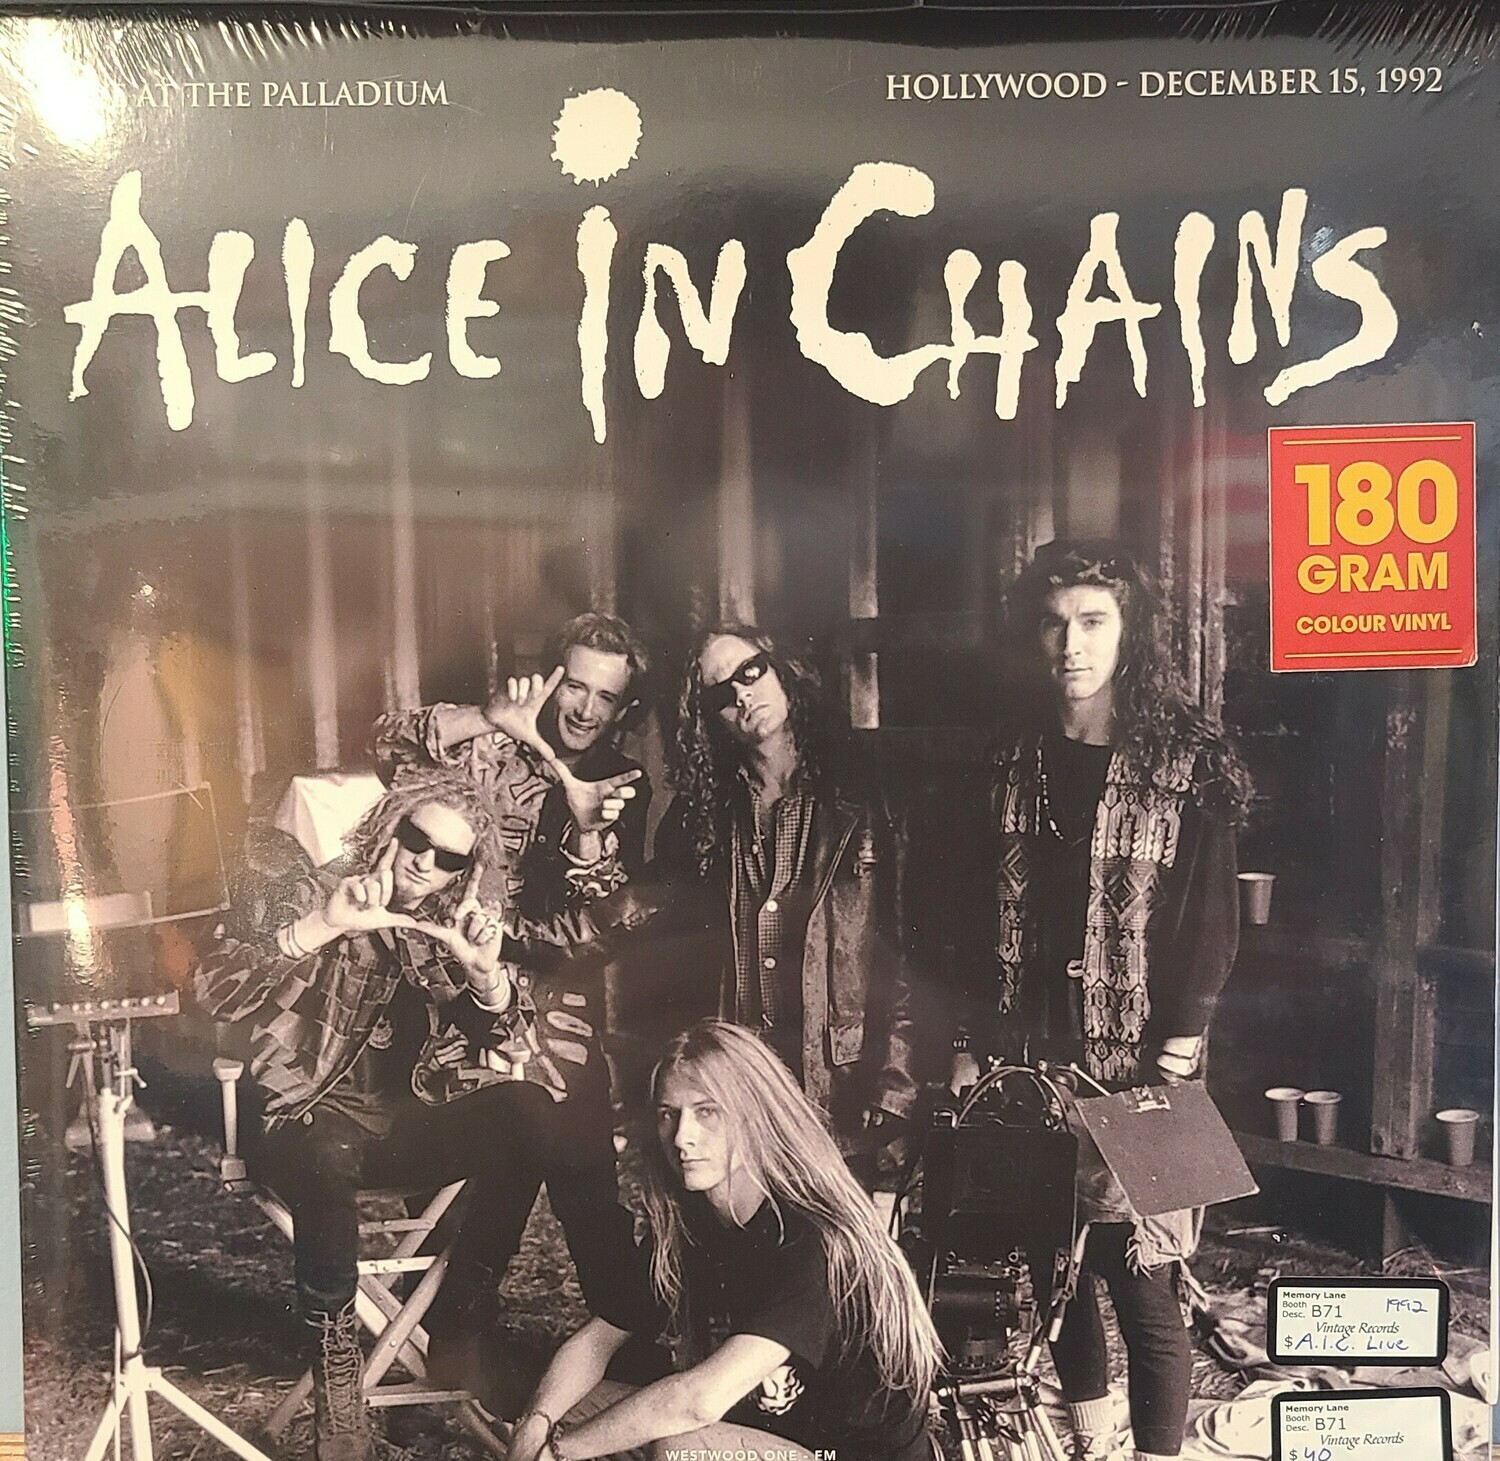 Alice In Chains - At The Palladium -  LP